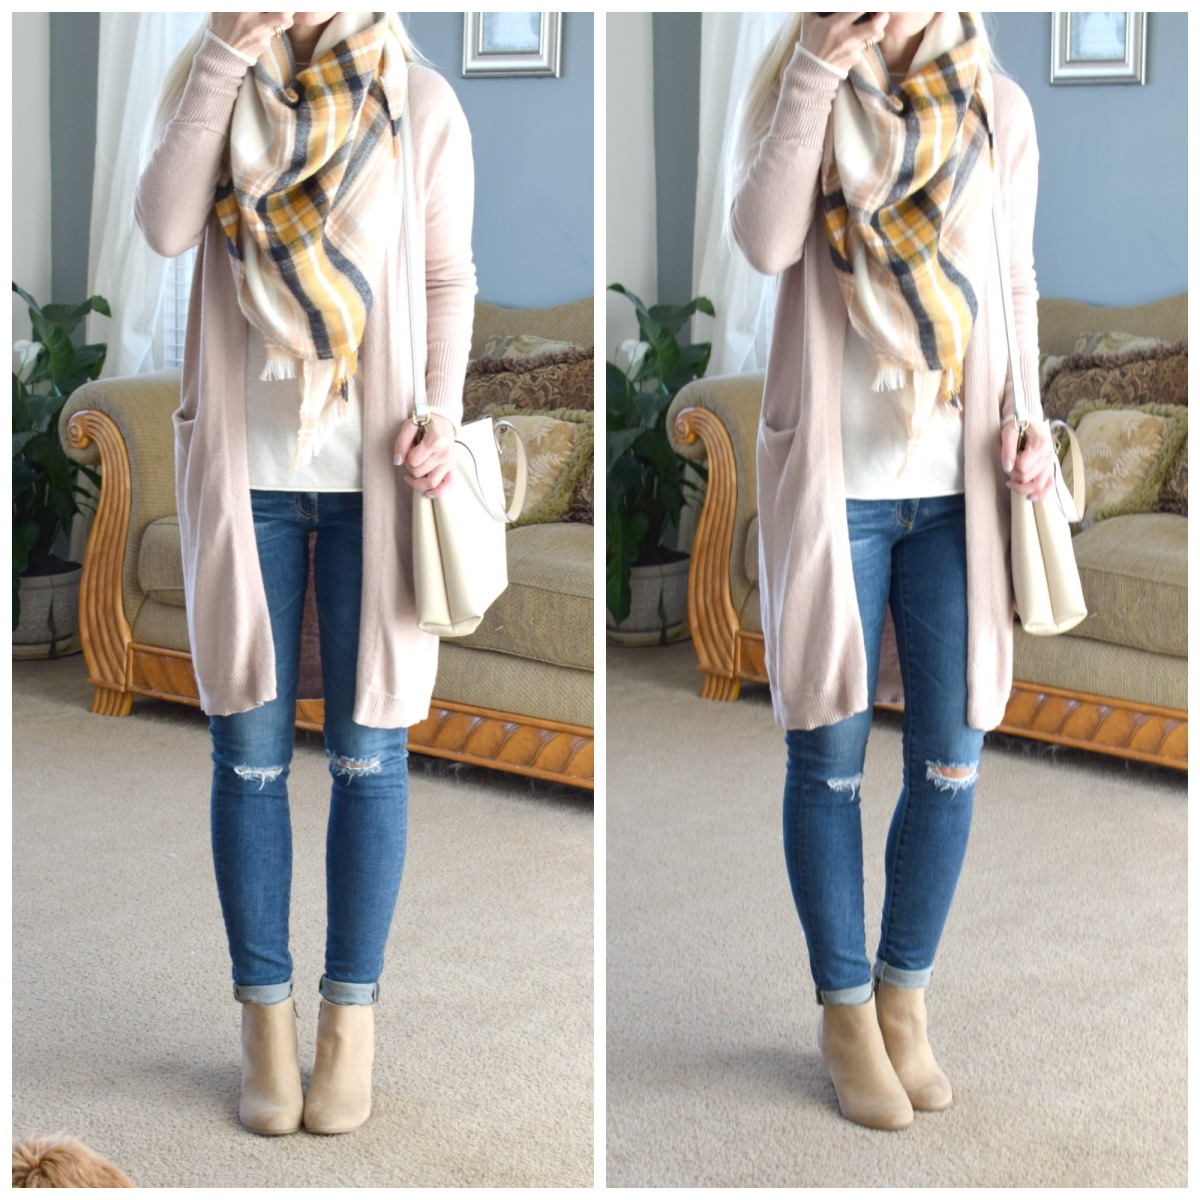 Oversized scarf and cardigan for a cozy yet pretty winter look |www.pearlsandsportsbras.com|